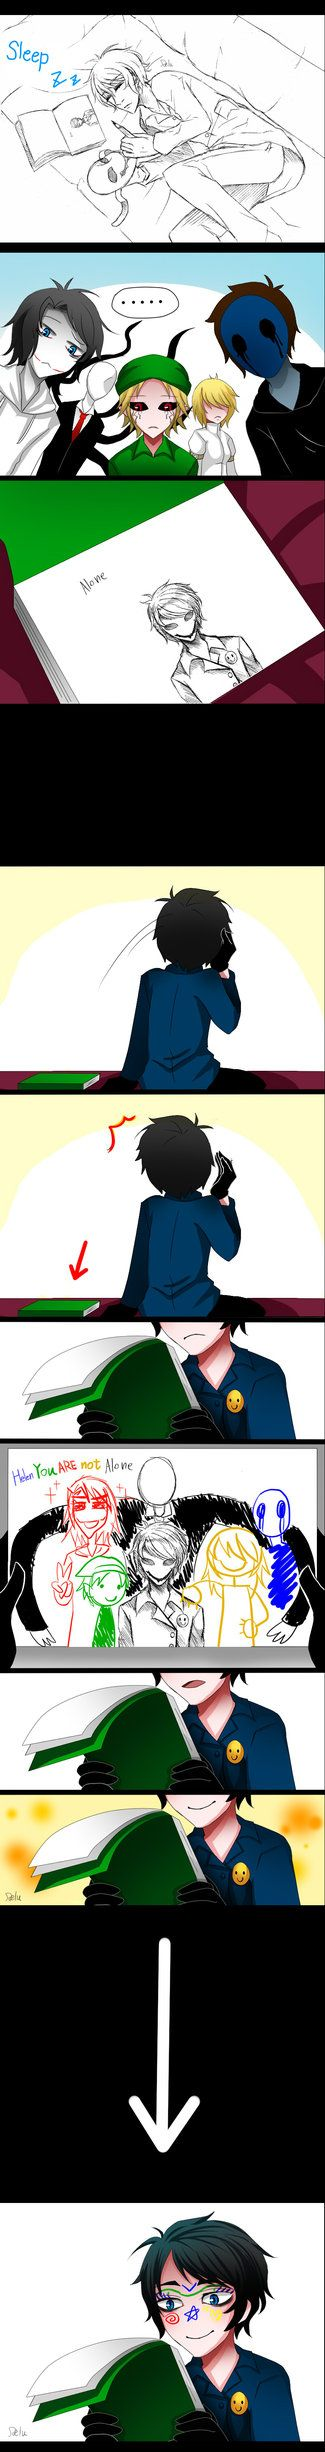 Even CreepyPastas need to know they belong... So cute .. but then they drew on his face too XD